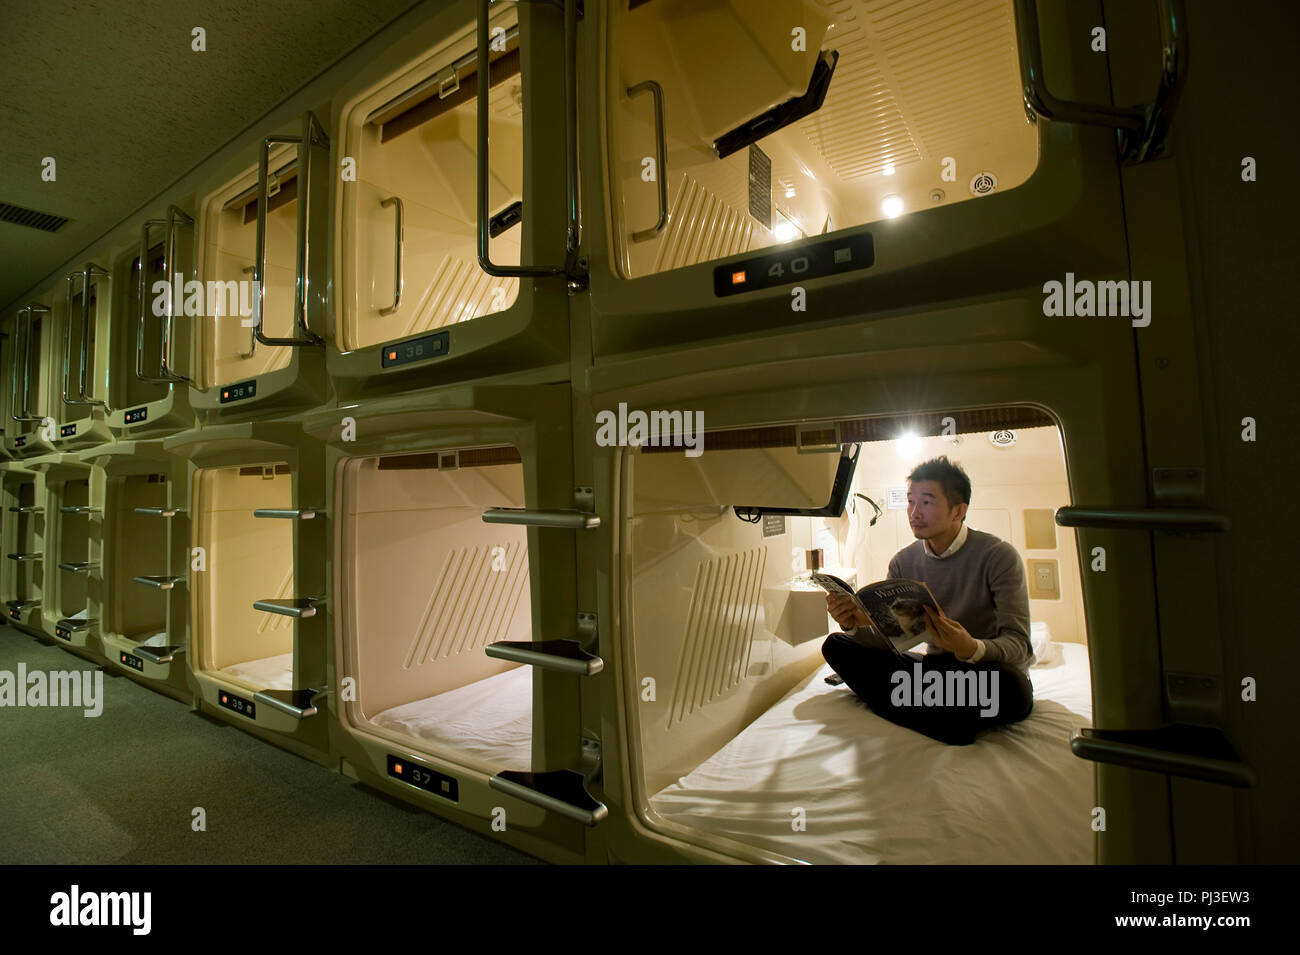 Photo shows the sleeping berths offered at SkySpa relaxation resort and capsule hotel in Yokohama, Japan on 03 Feb. 2012. Capsule hotels can be found  - Stock Image